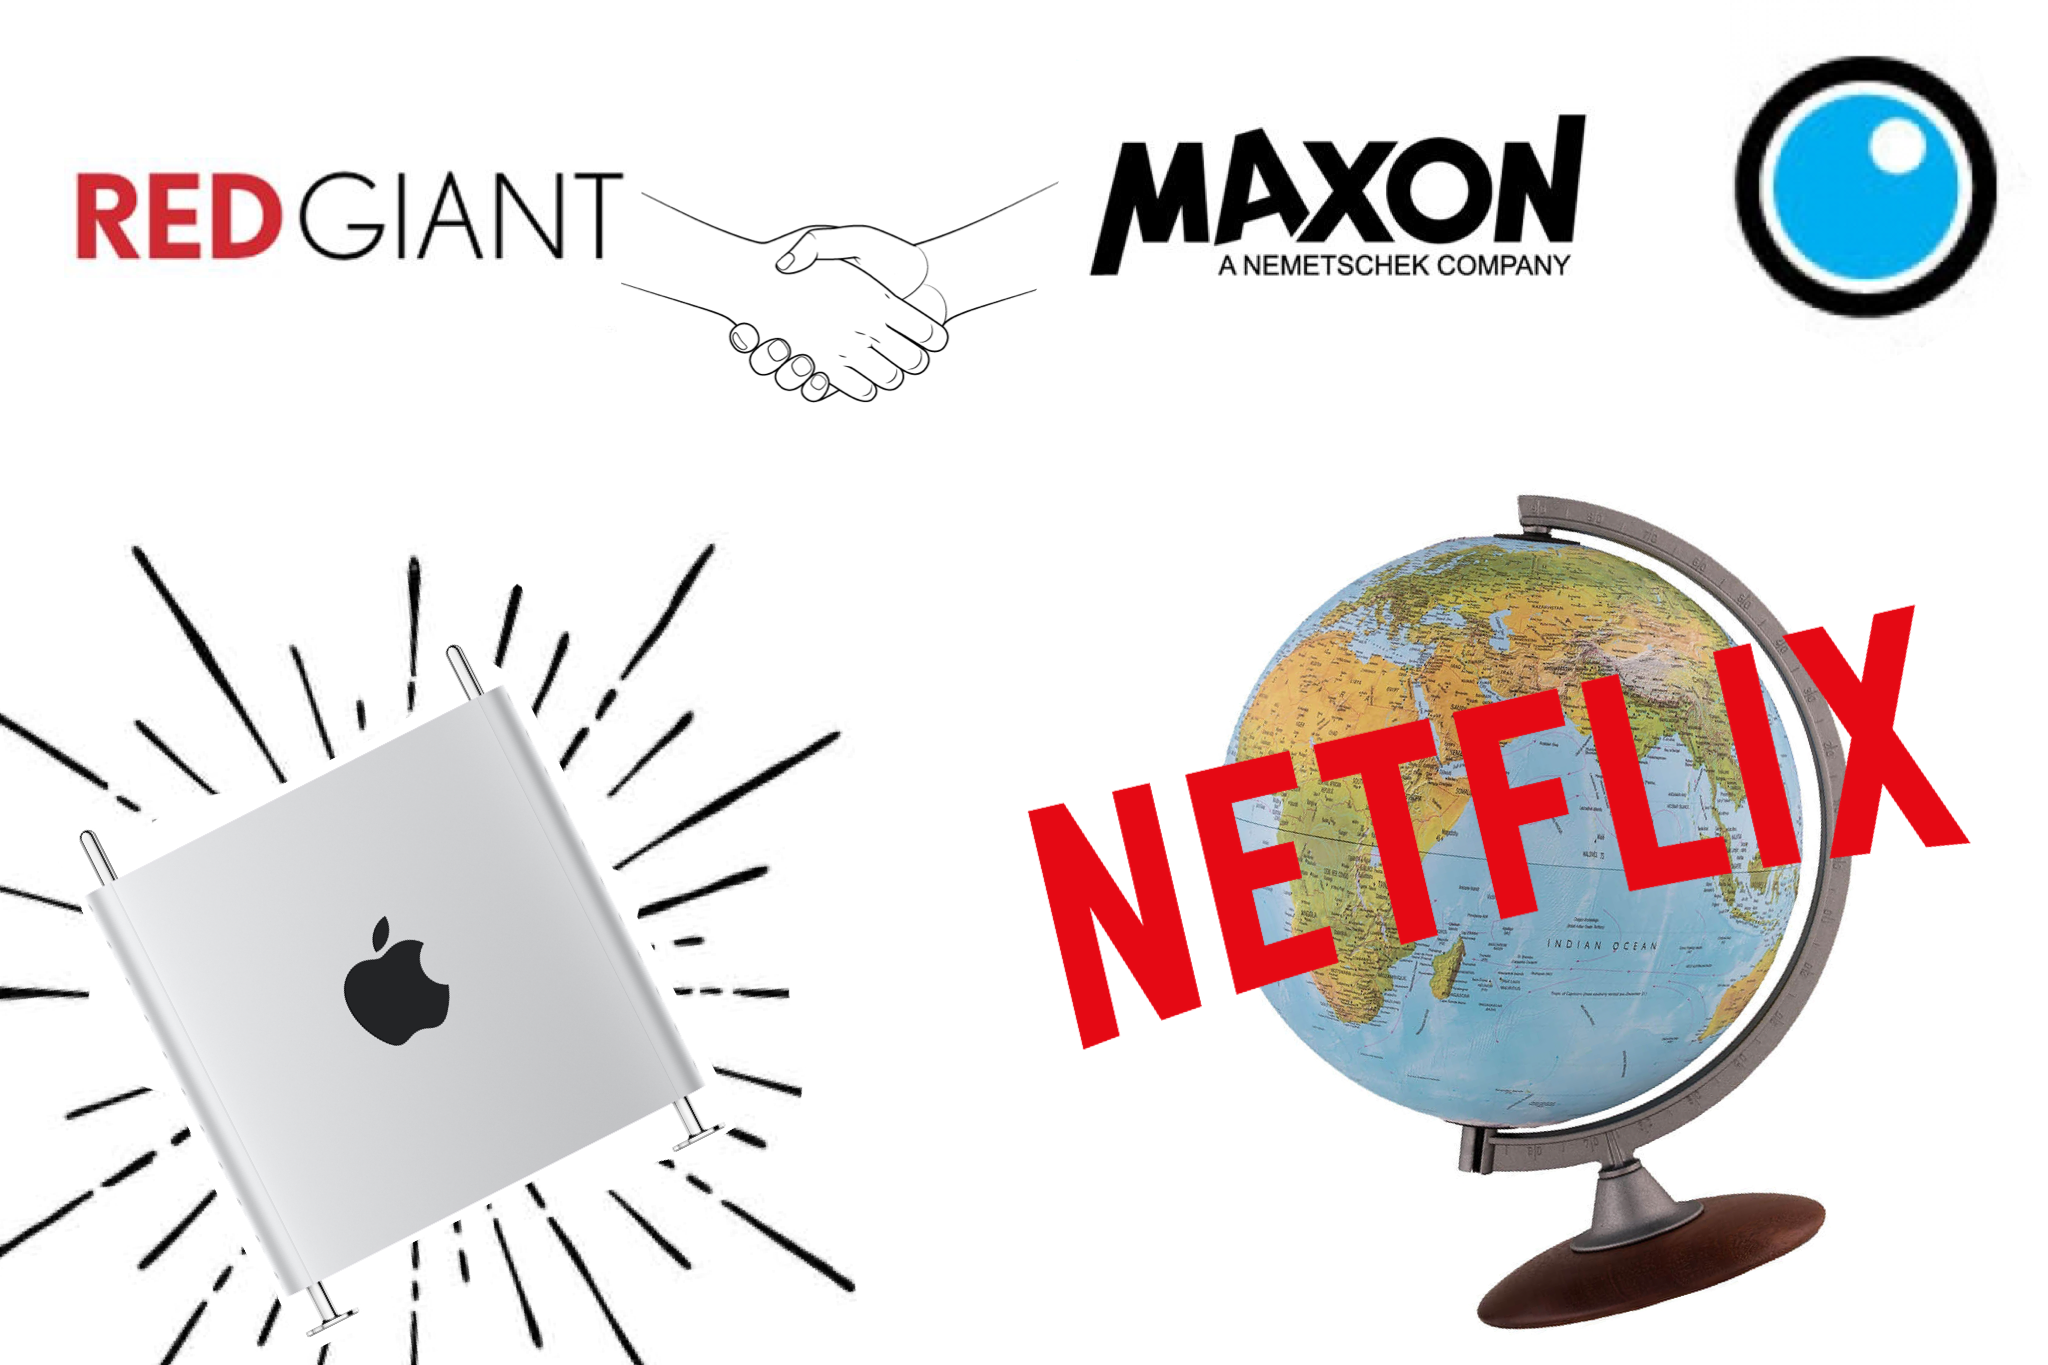 PVC Podcast Mac Pro, Red Giant merges with Maxon, Netflix international expansion